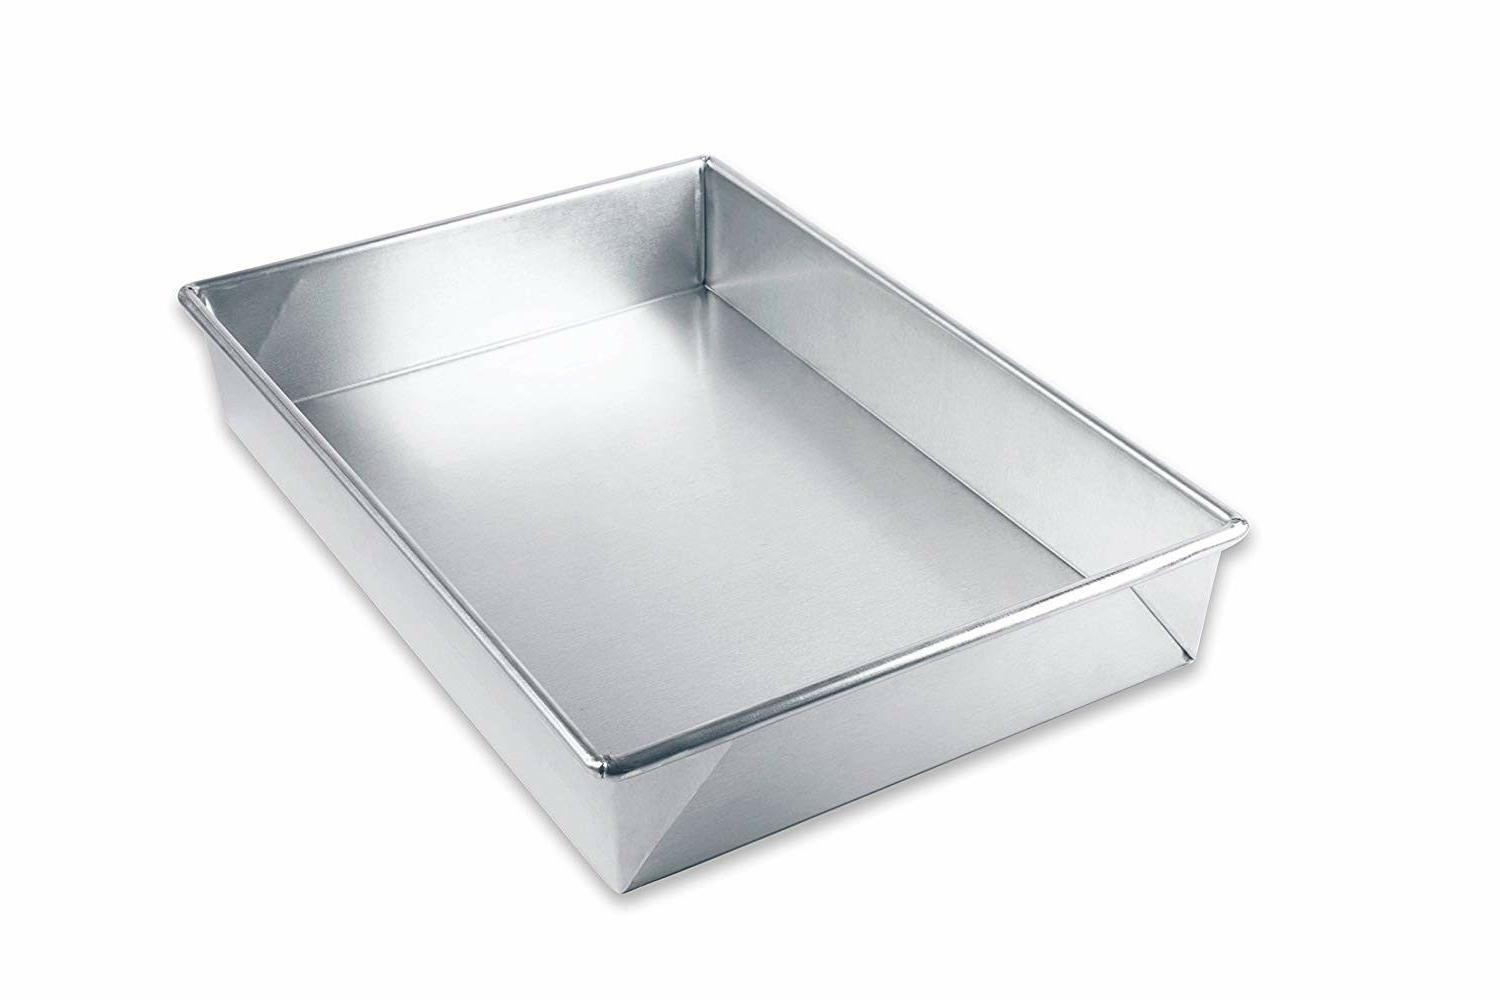 Aluminum Bakeware Rectangular Baking Pan 9x13 Cakes Food Kit